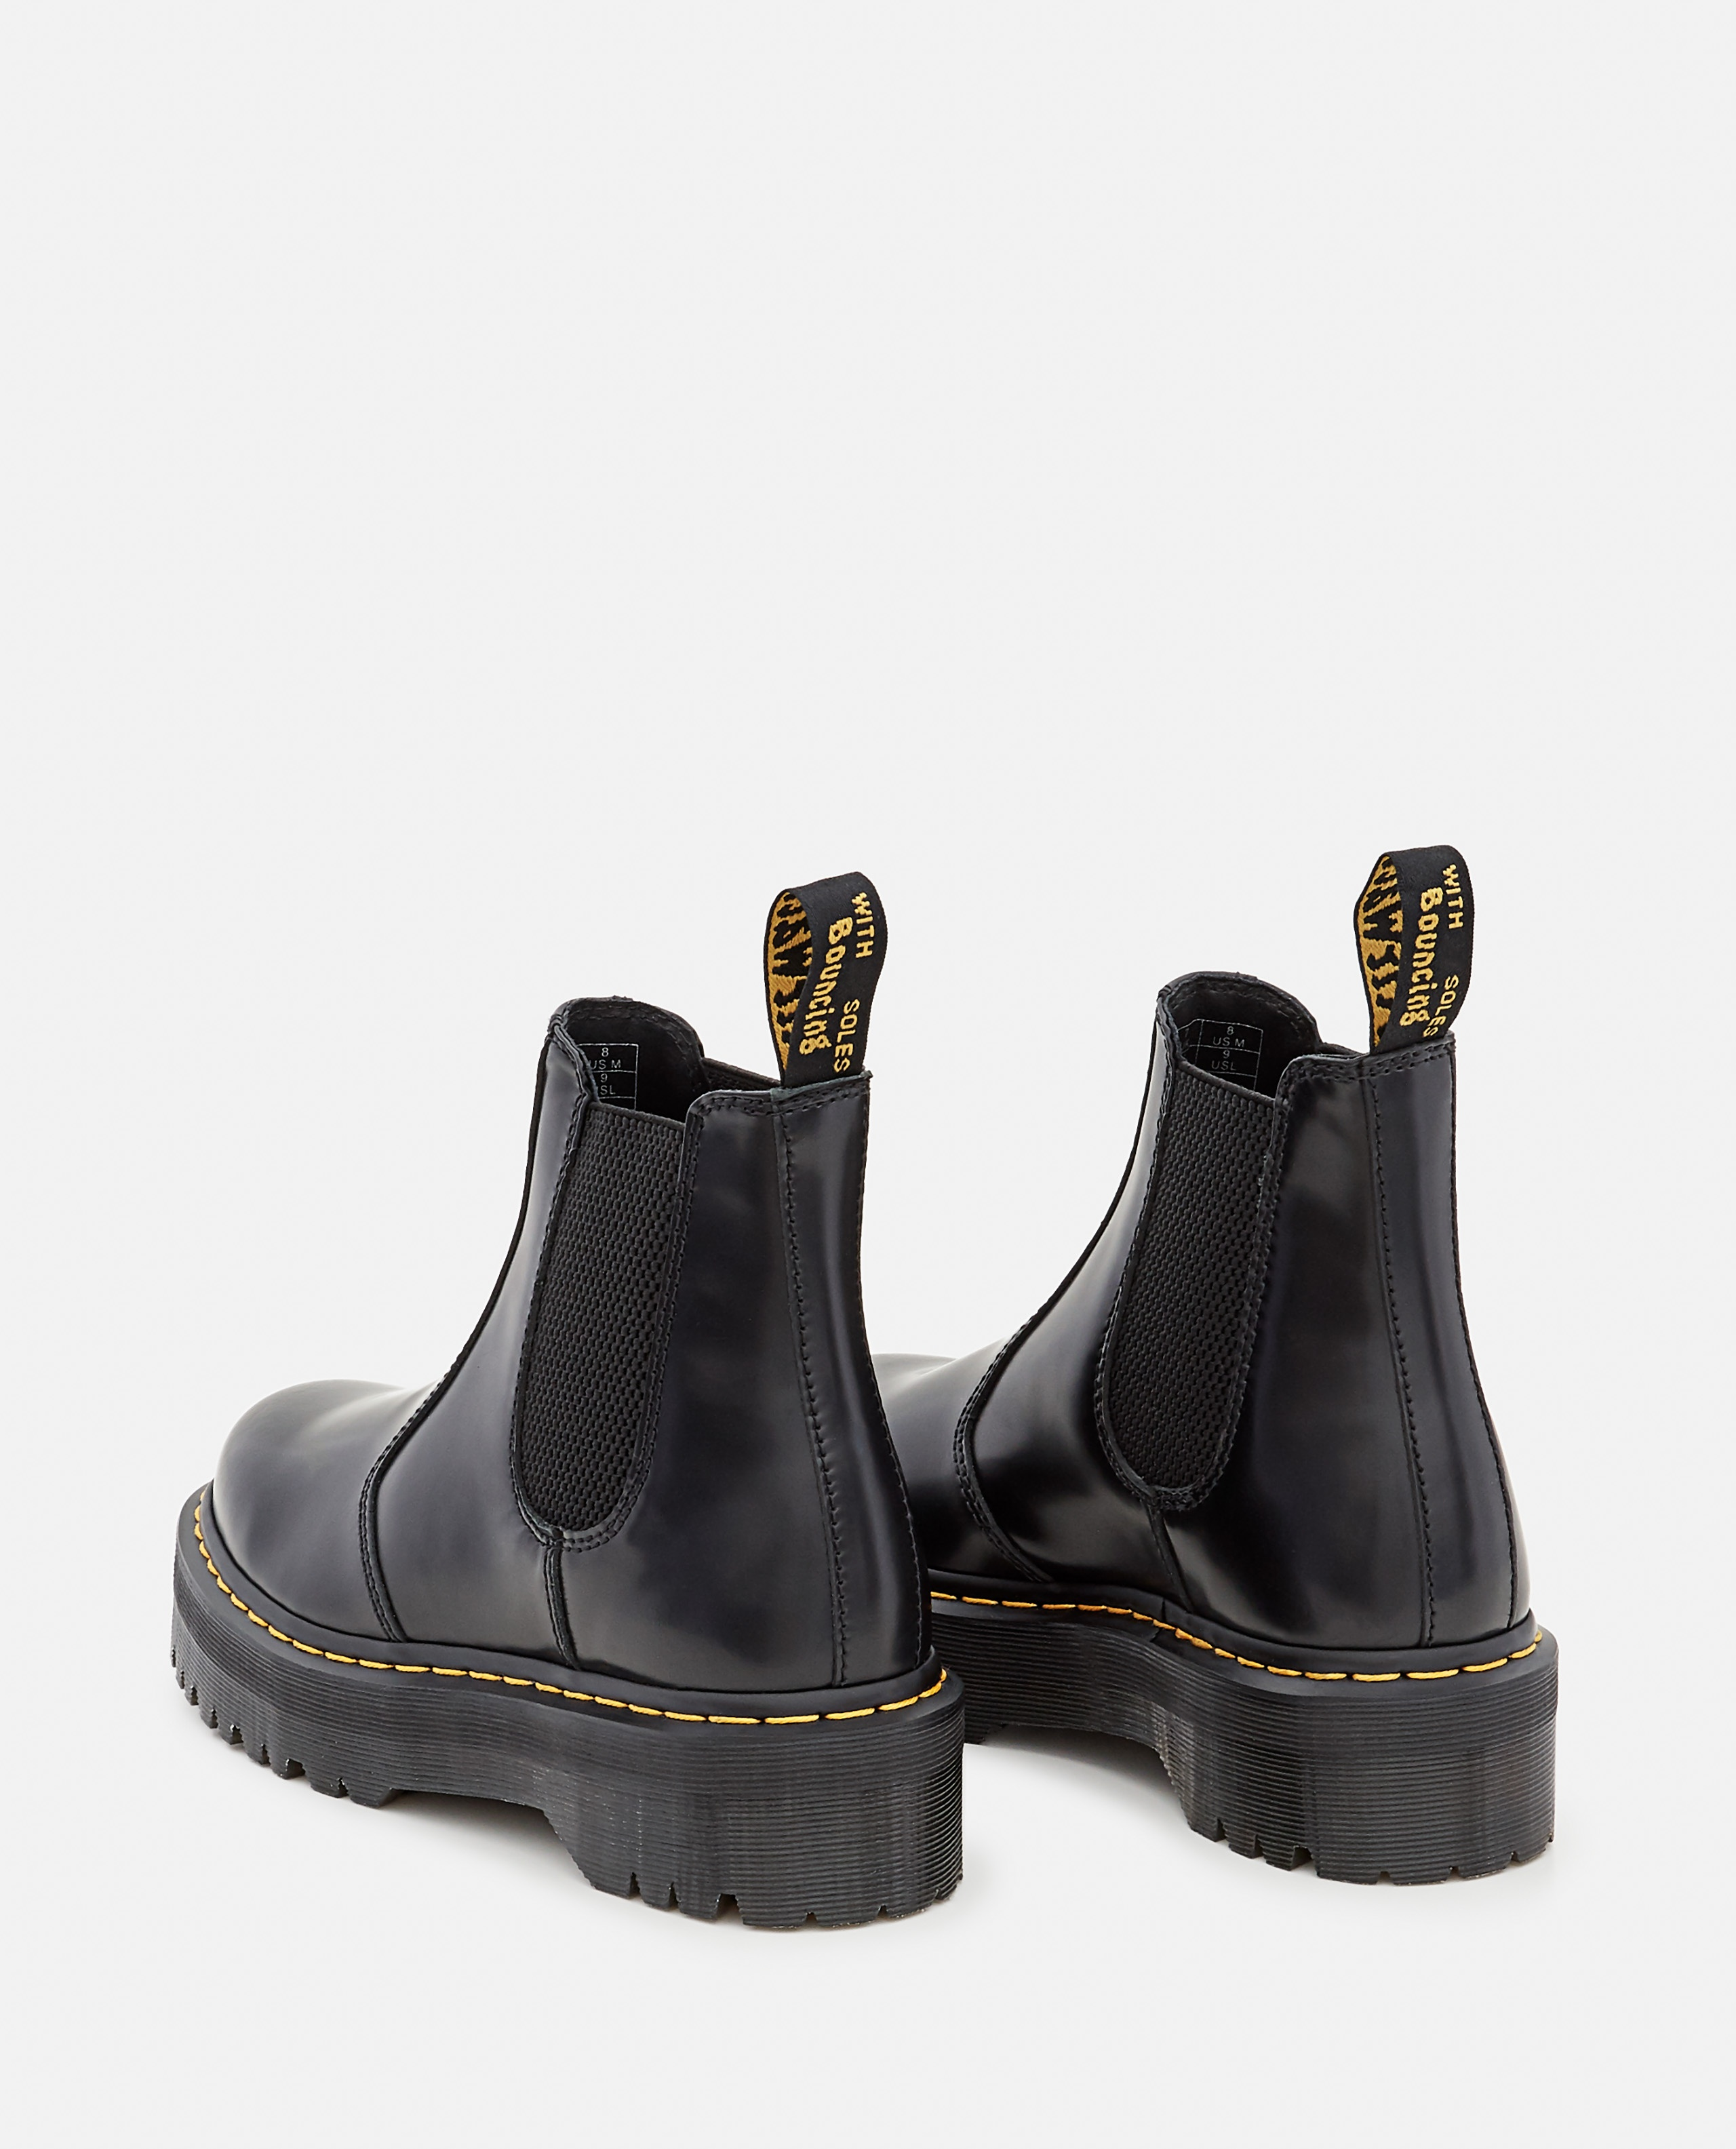 2976 QUAD POLISHED SMOOTH LEATHER CHELSEA BOOTS Women Dr. Martens 000356240051848 3